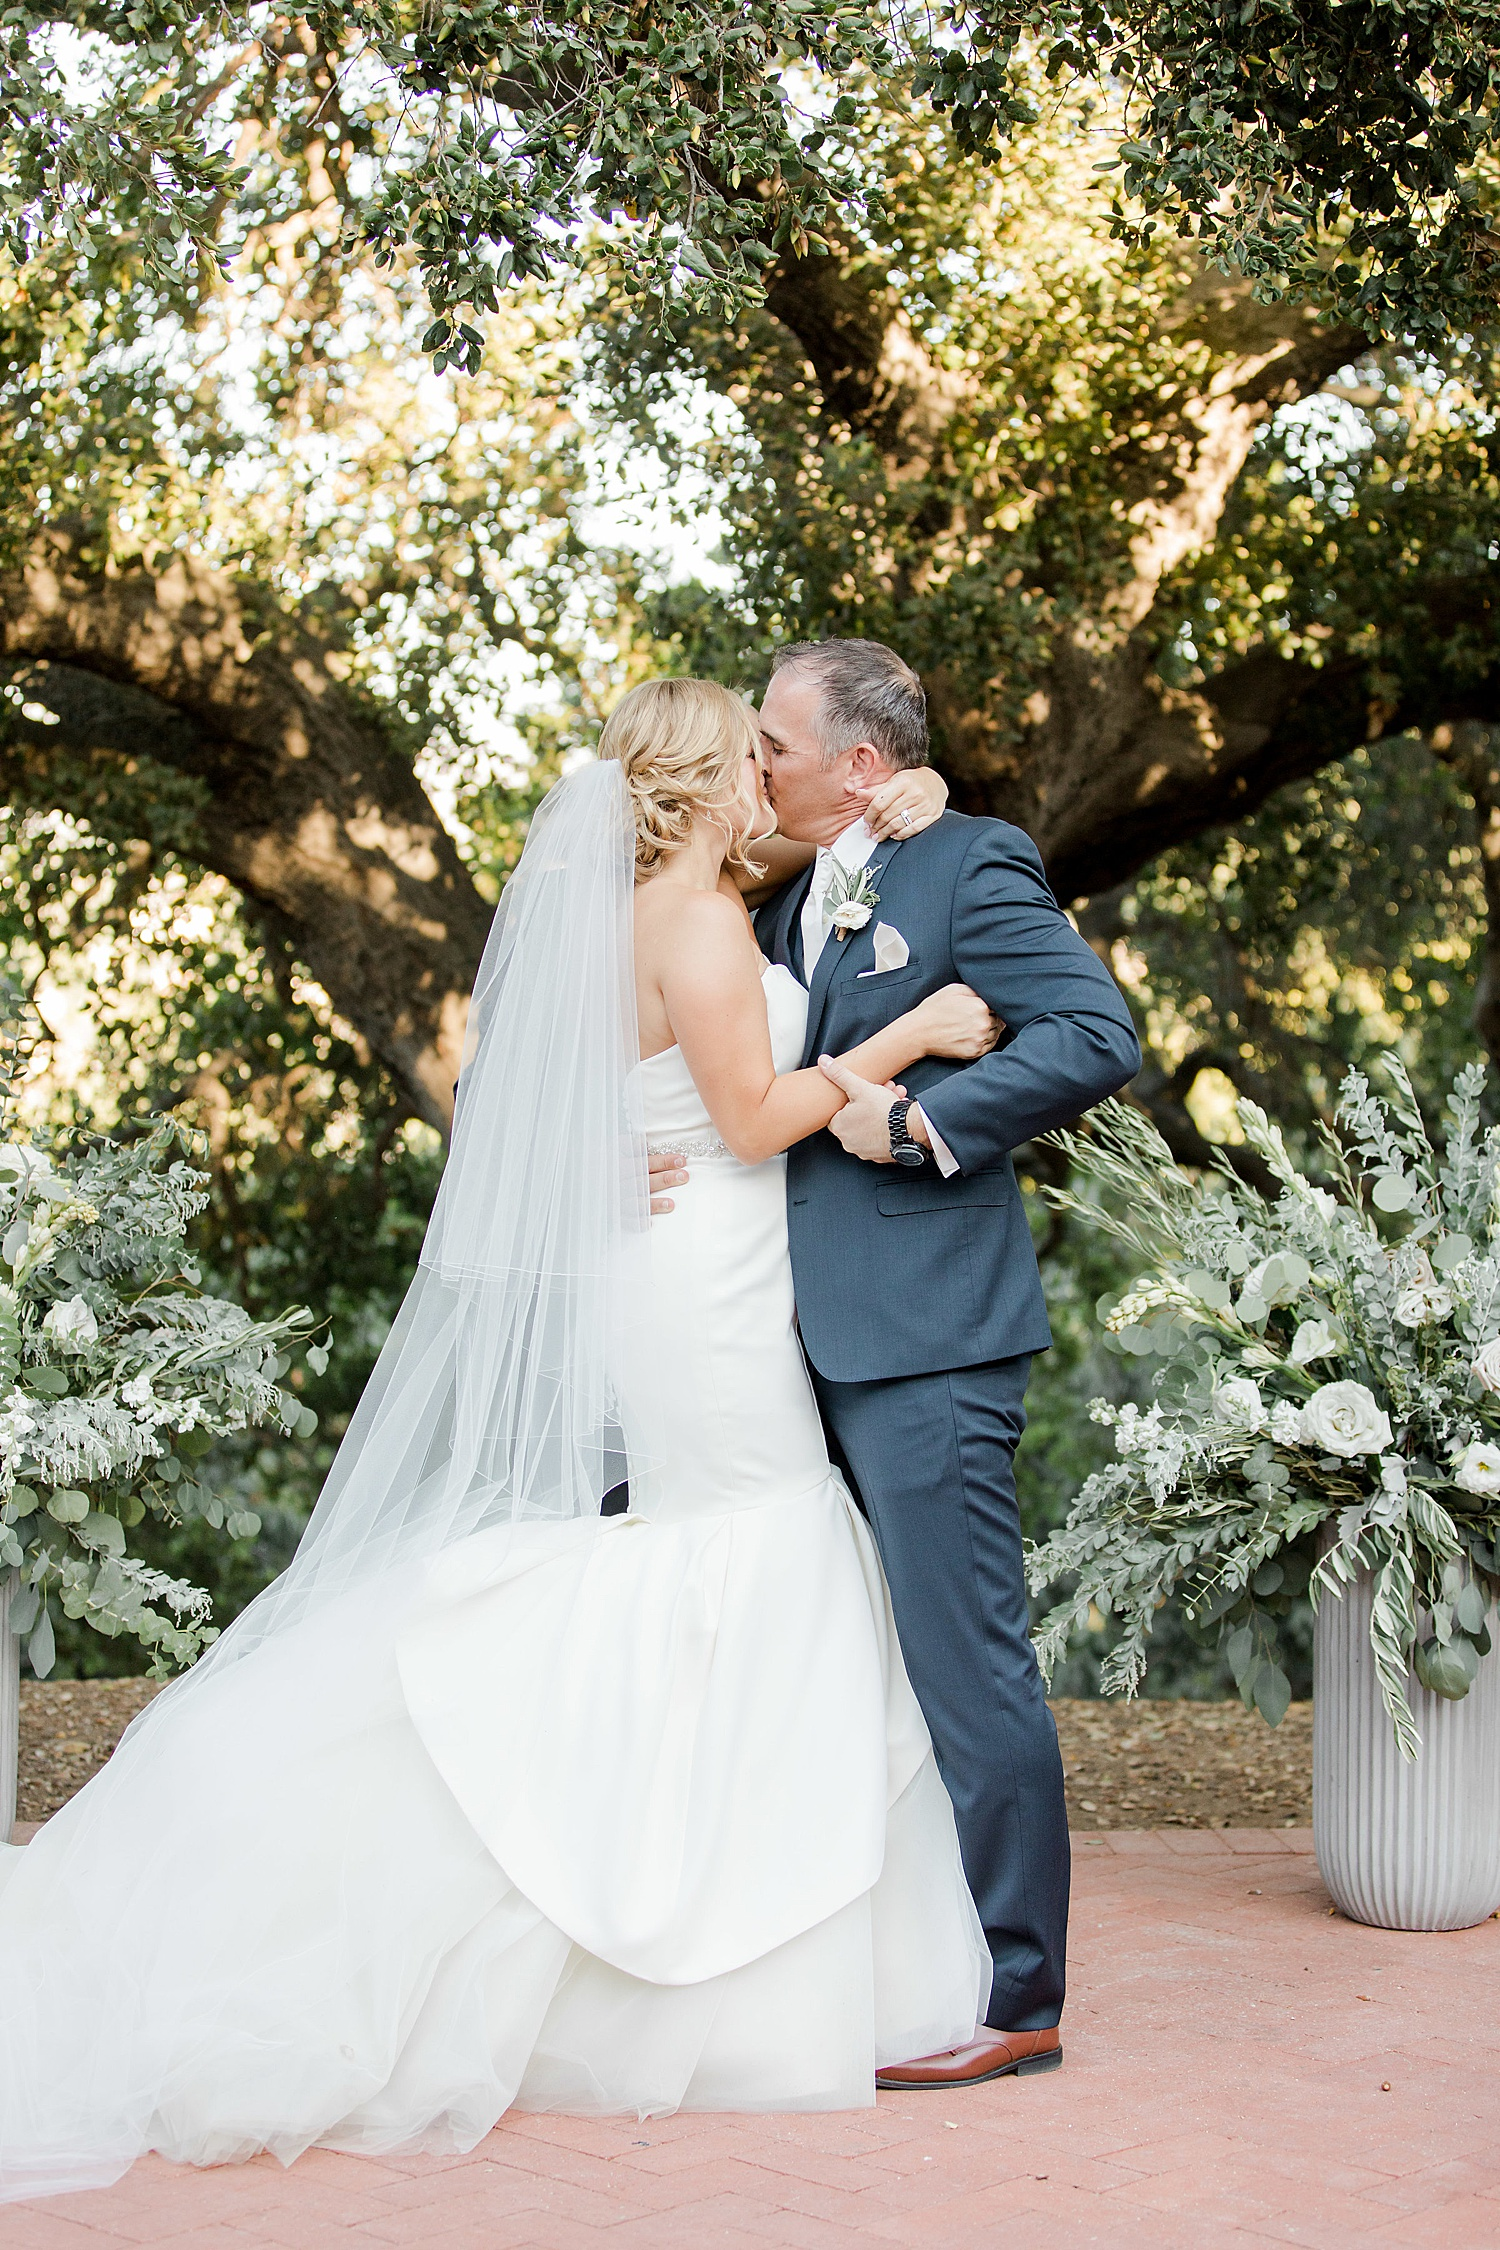 california wedding day, california wedding, wedding inspiration, wedding photographer, california wedding venue